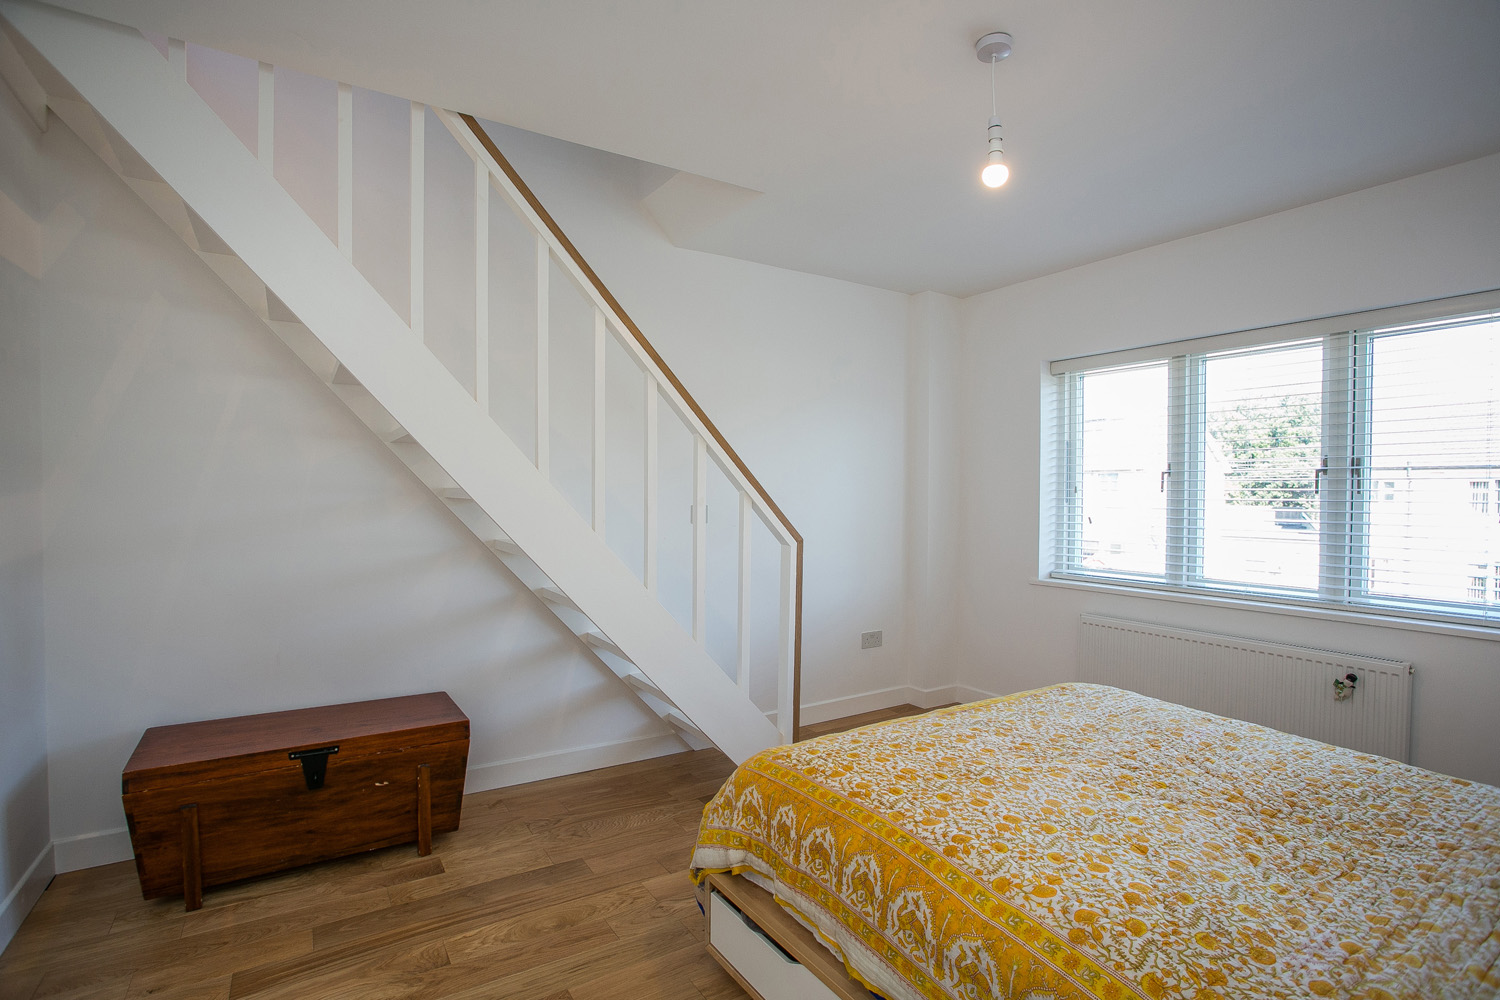 Watermill-bedroom-stairs-window.jpg